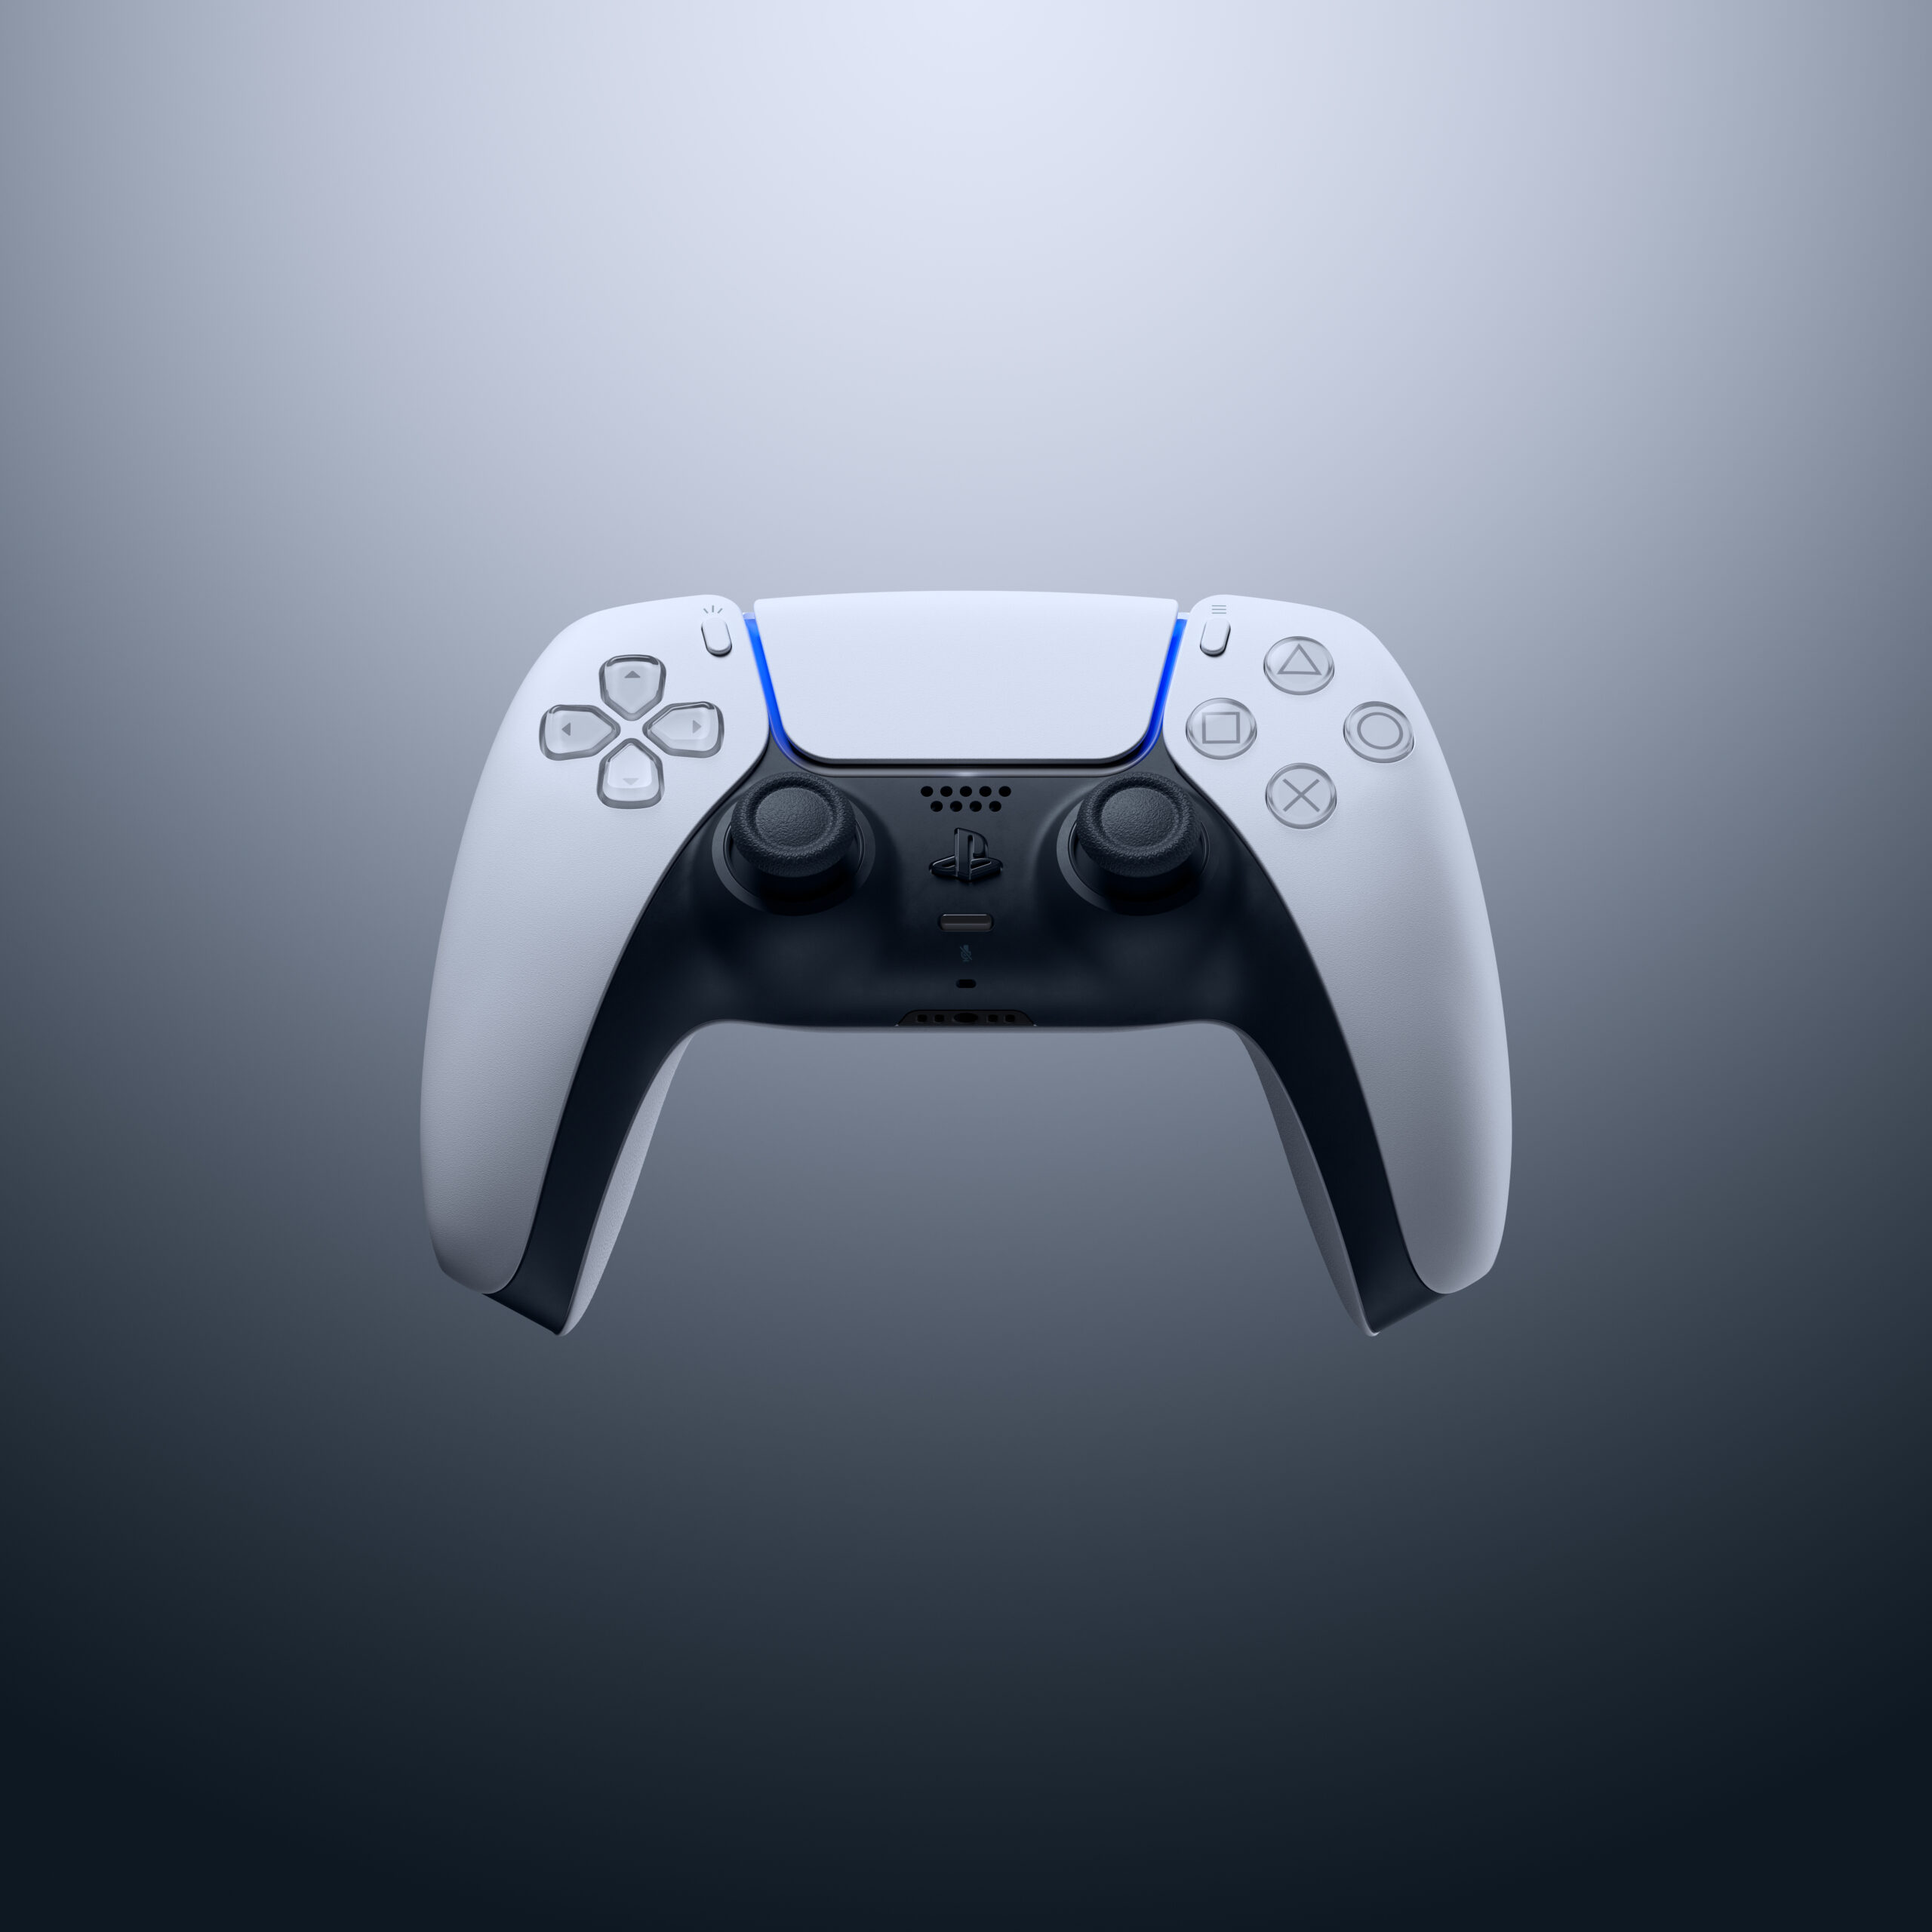 PS5 Hardware and Accessories 13